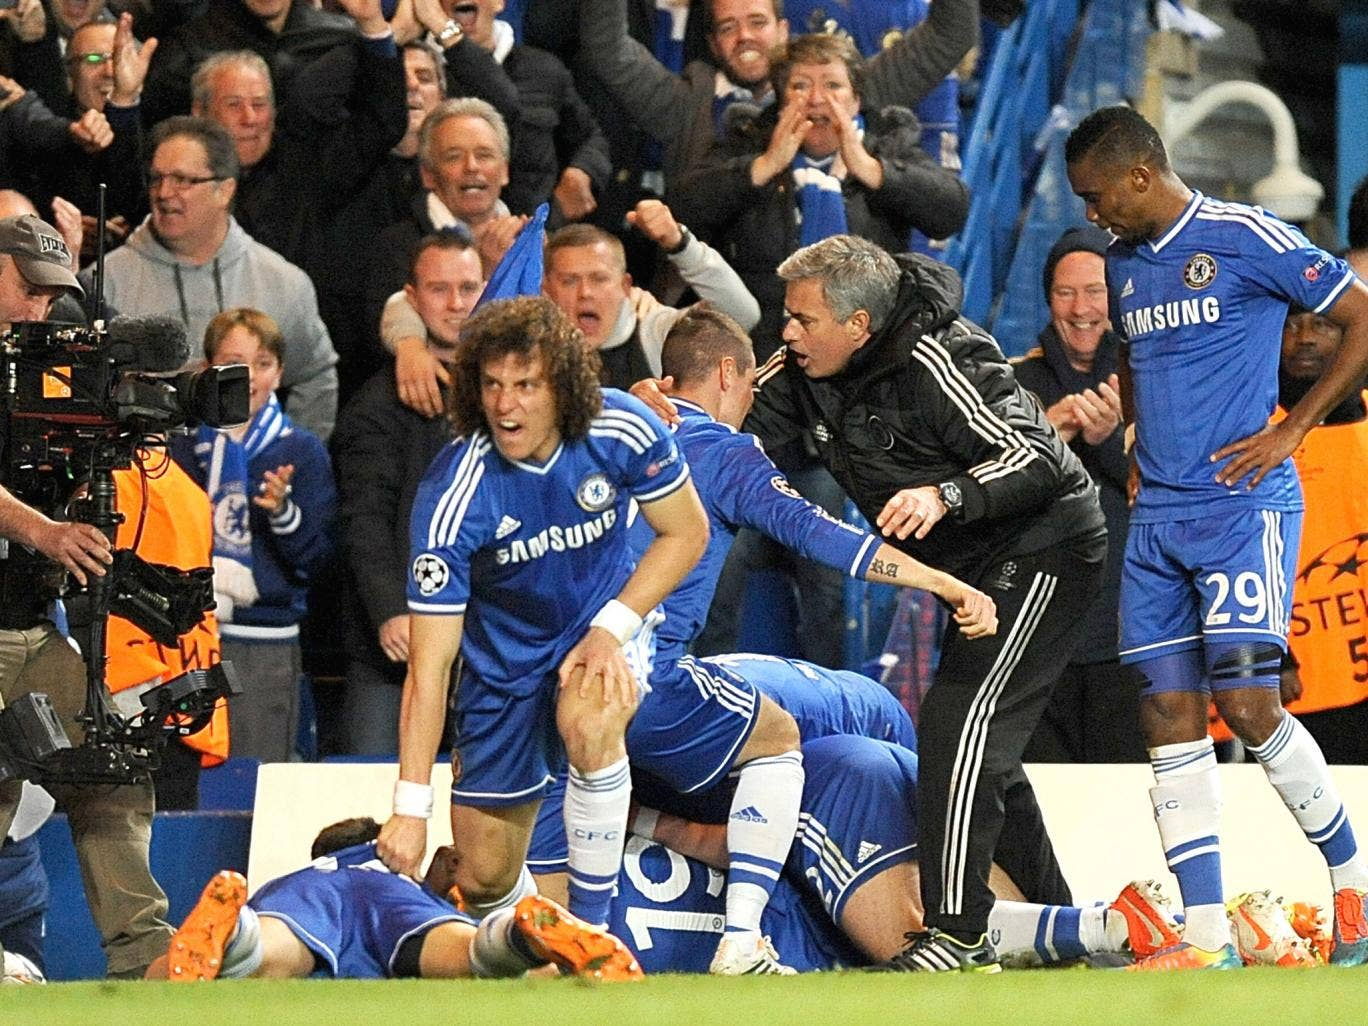 Jose Mourinho joins in the bundle with his players celebrating Chelsea's late goal